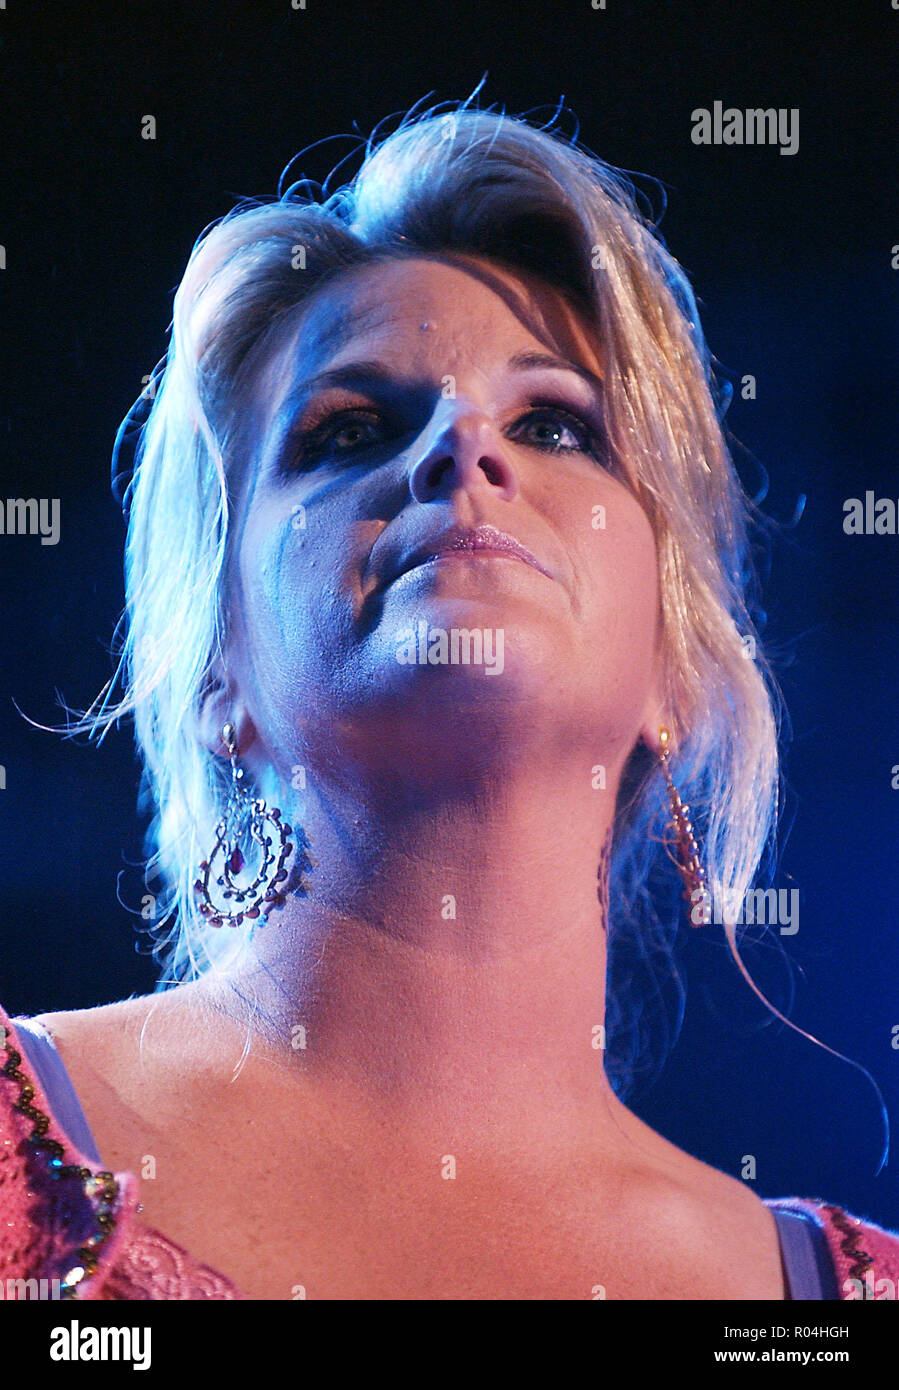 Page 2 Nashville Tv High Resolution Stock Photography And Images Alamy